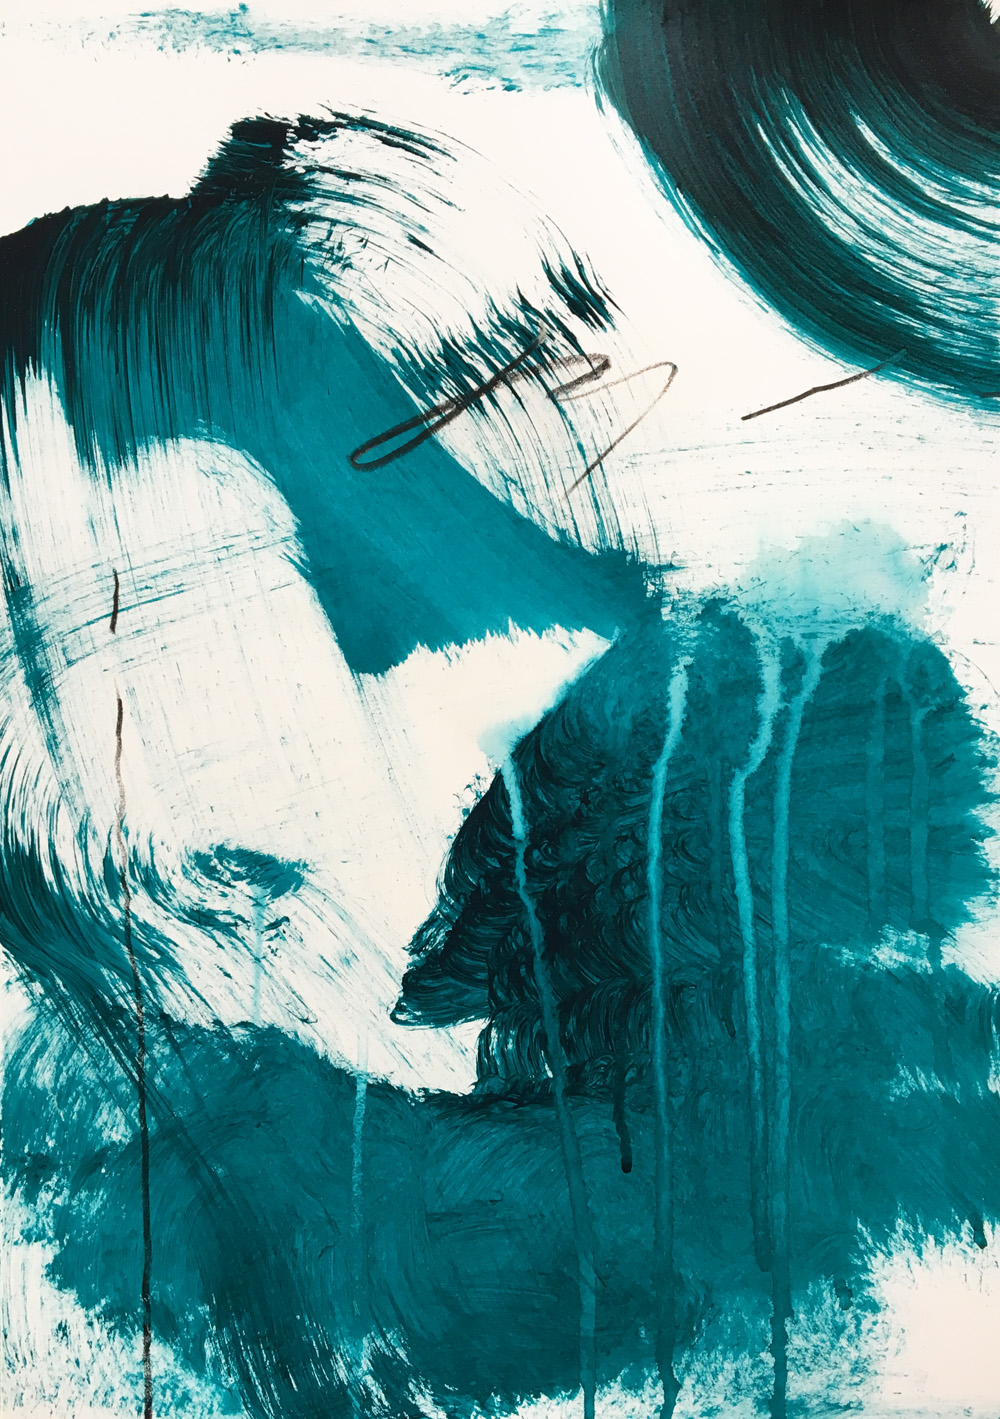 Loose brushstrokes using a wide brush and fluid turquoise acrylic paint.